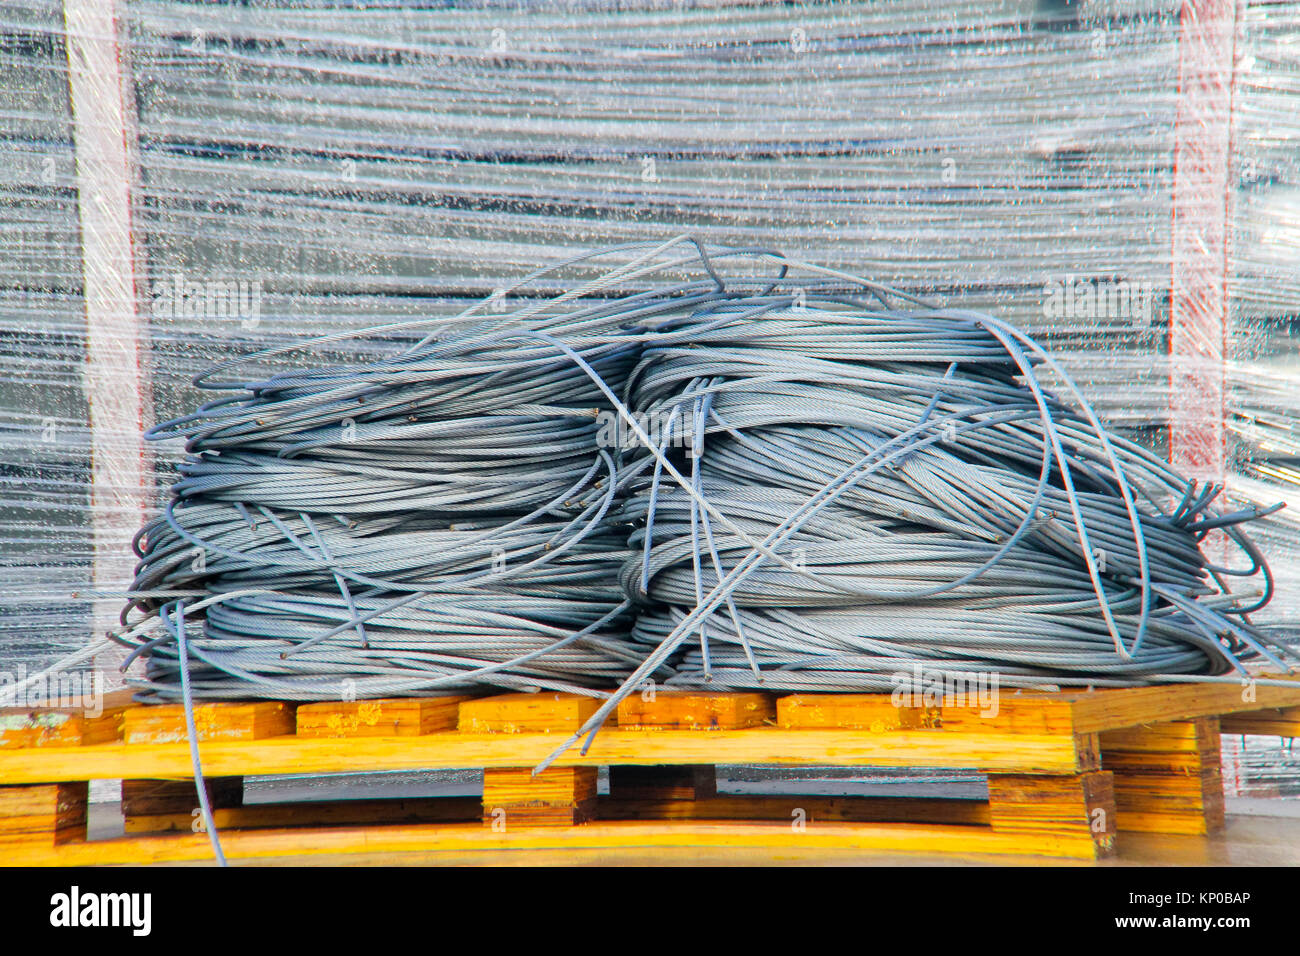 steel wire or steel rope or steel wire rope cable or steel wire rope ...